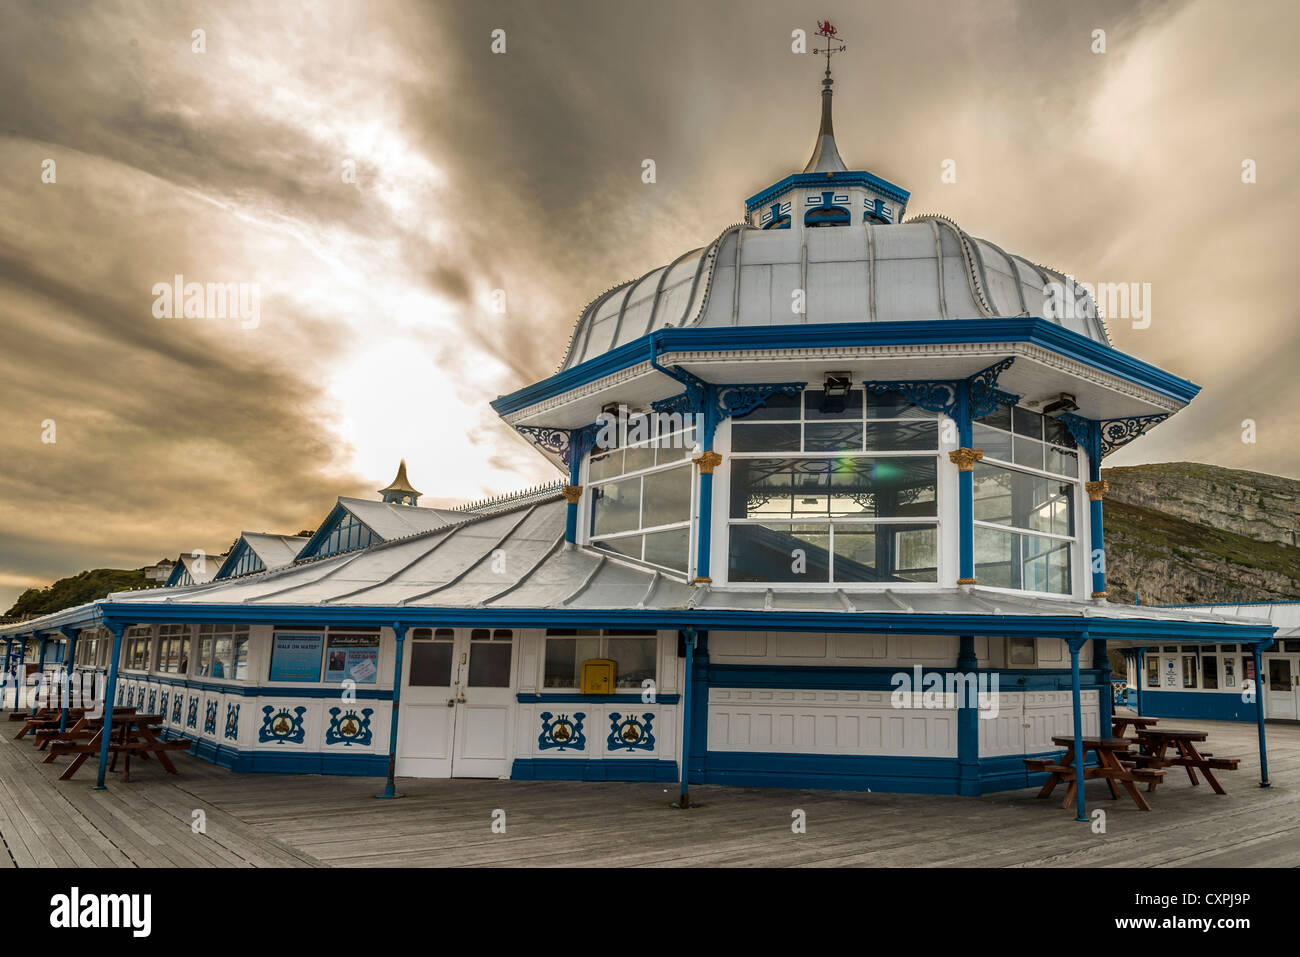 The amusement arcade on the end of the pier at Llandudno in North Wales. Clwyd Stock Photo